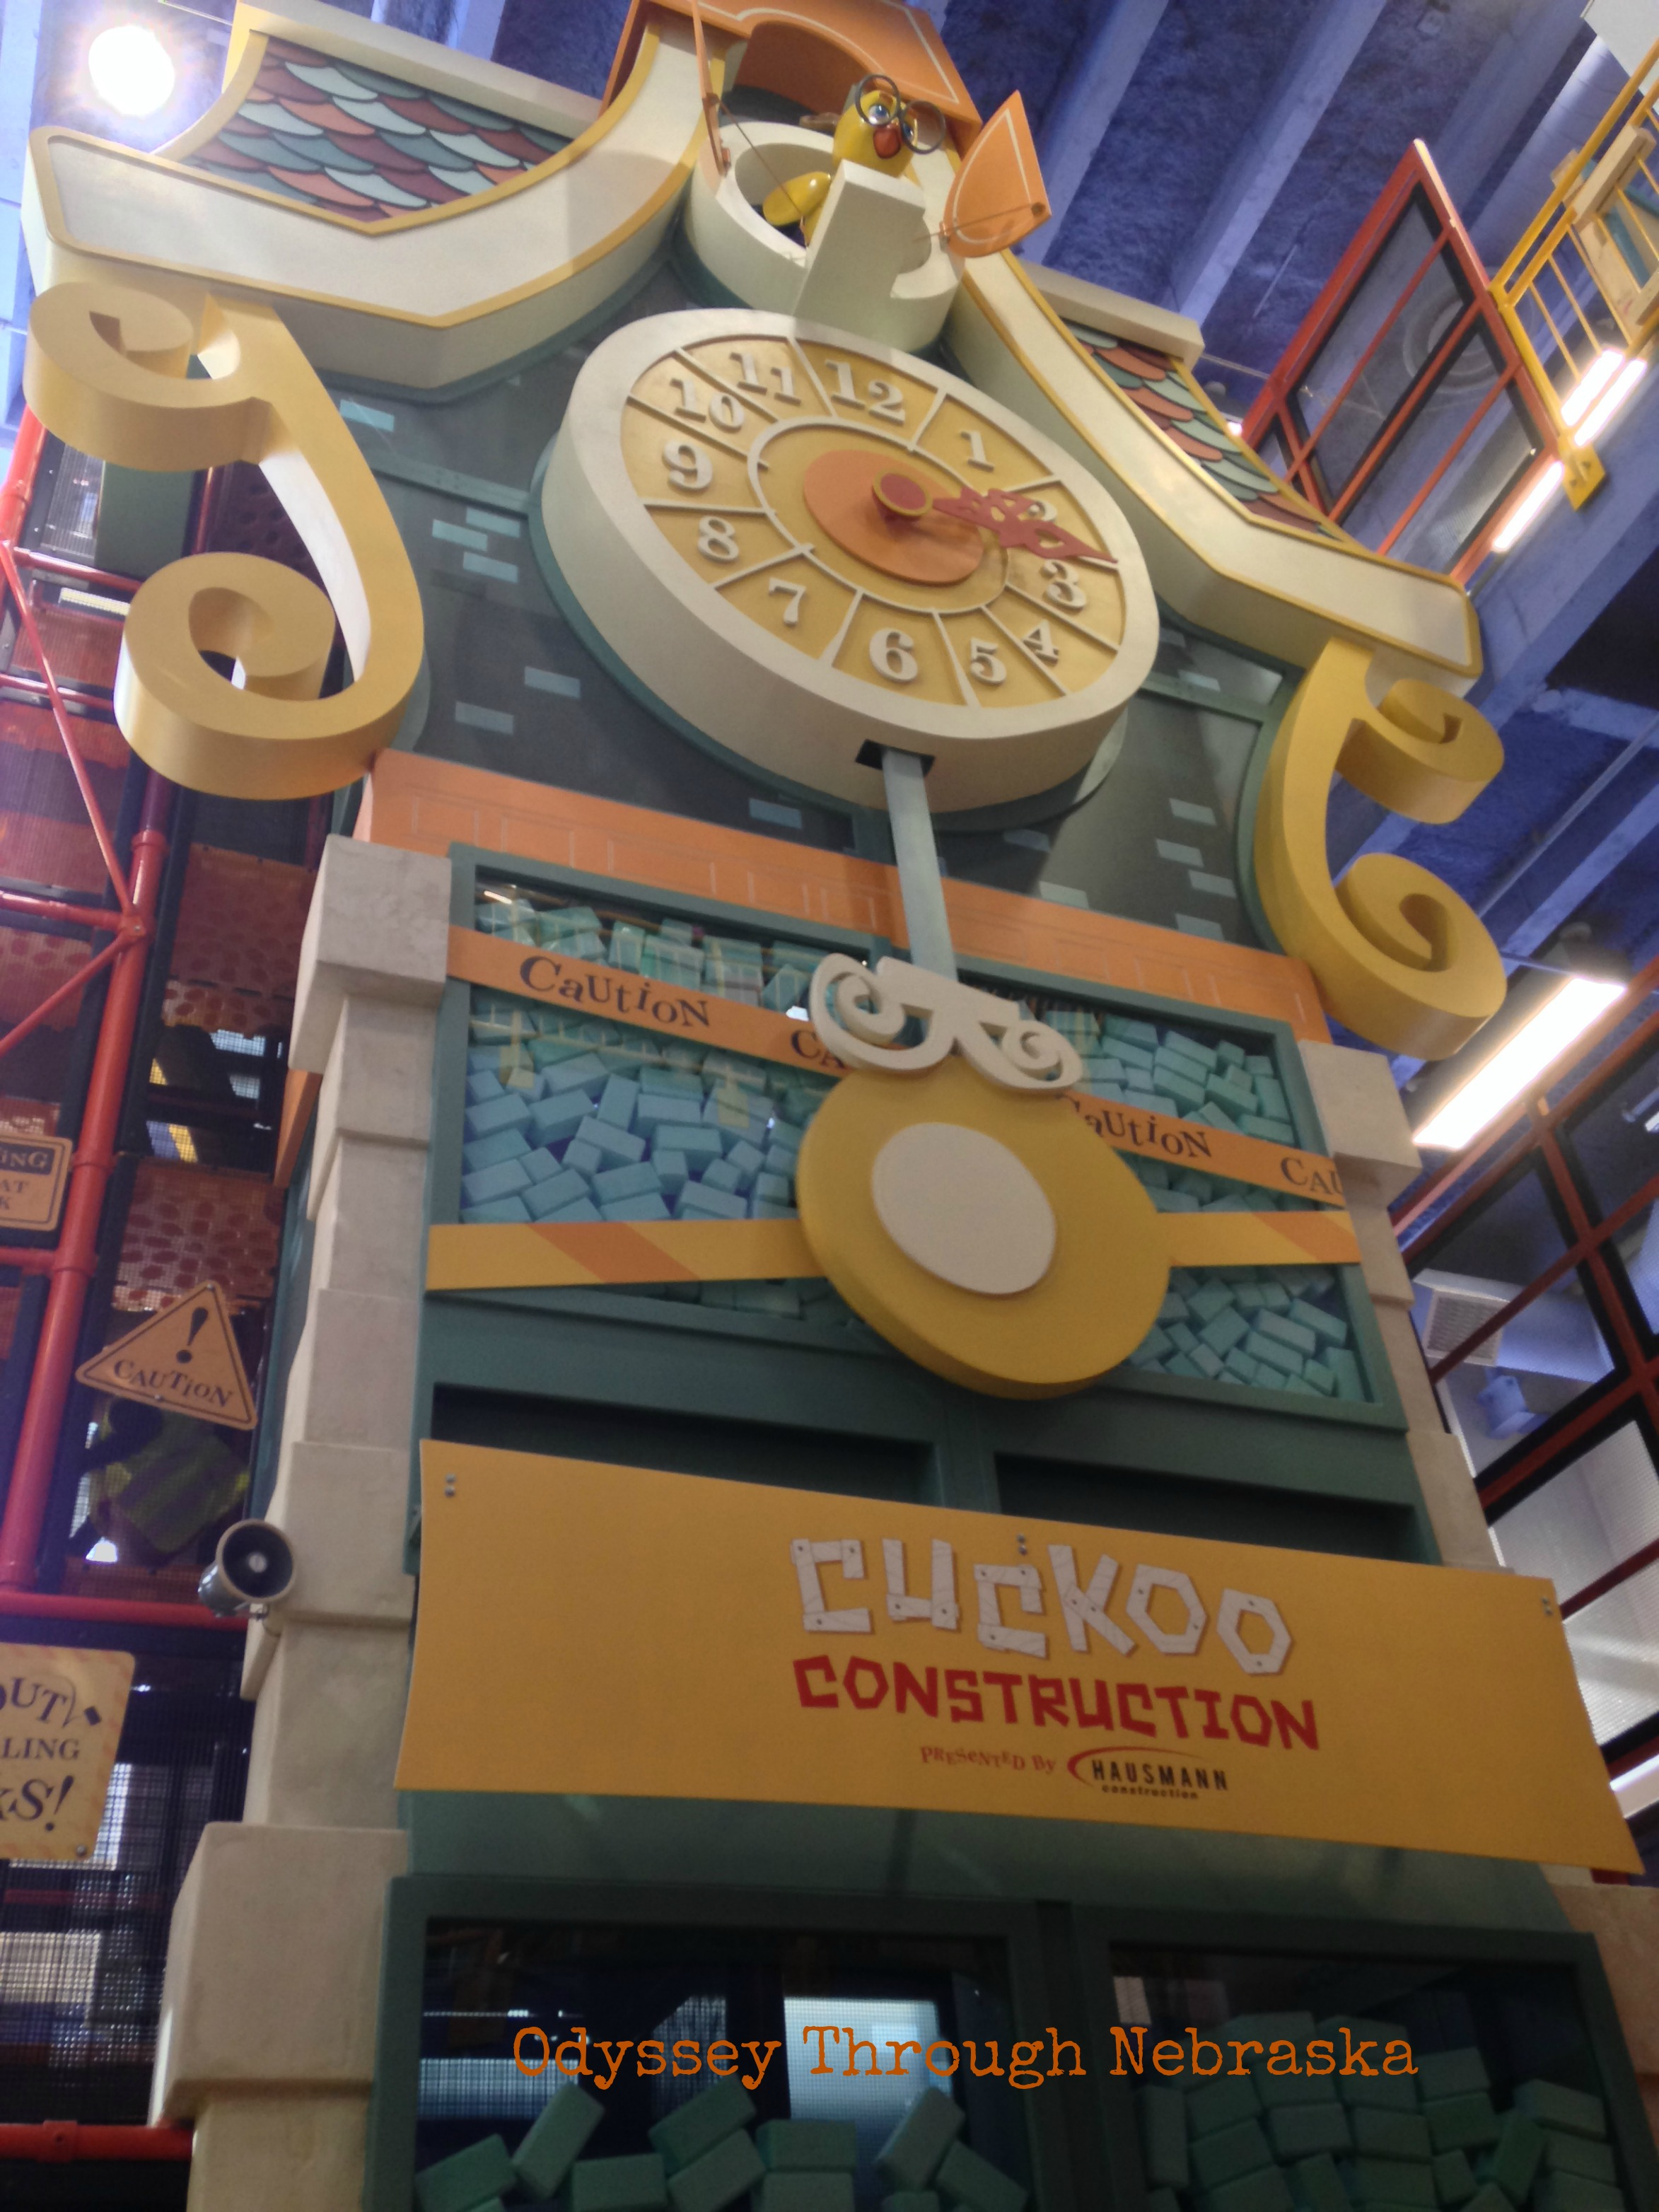 Cuckoo Construction at the Lincoln Children's Museum